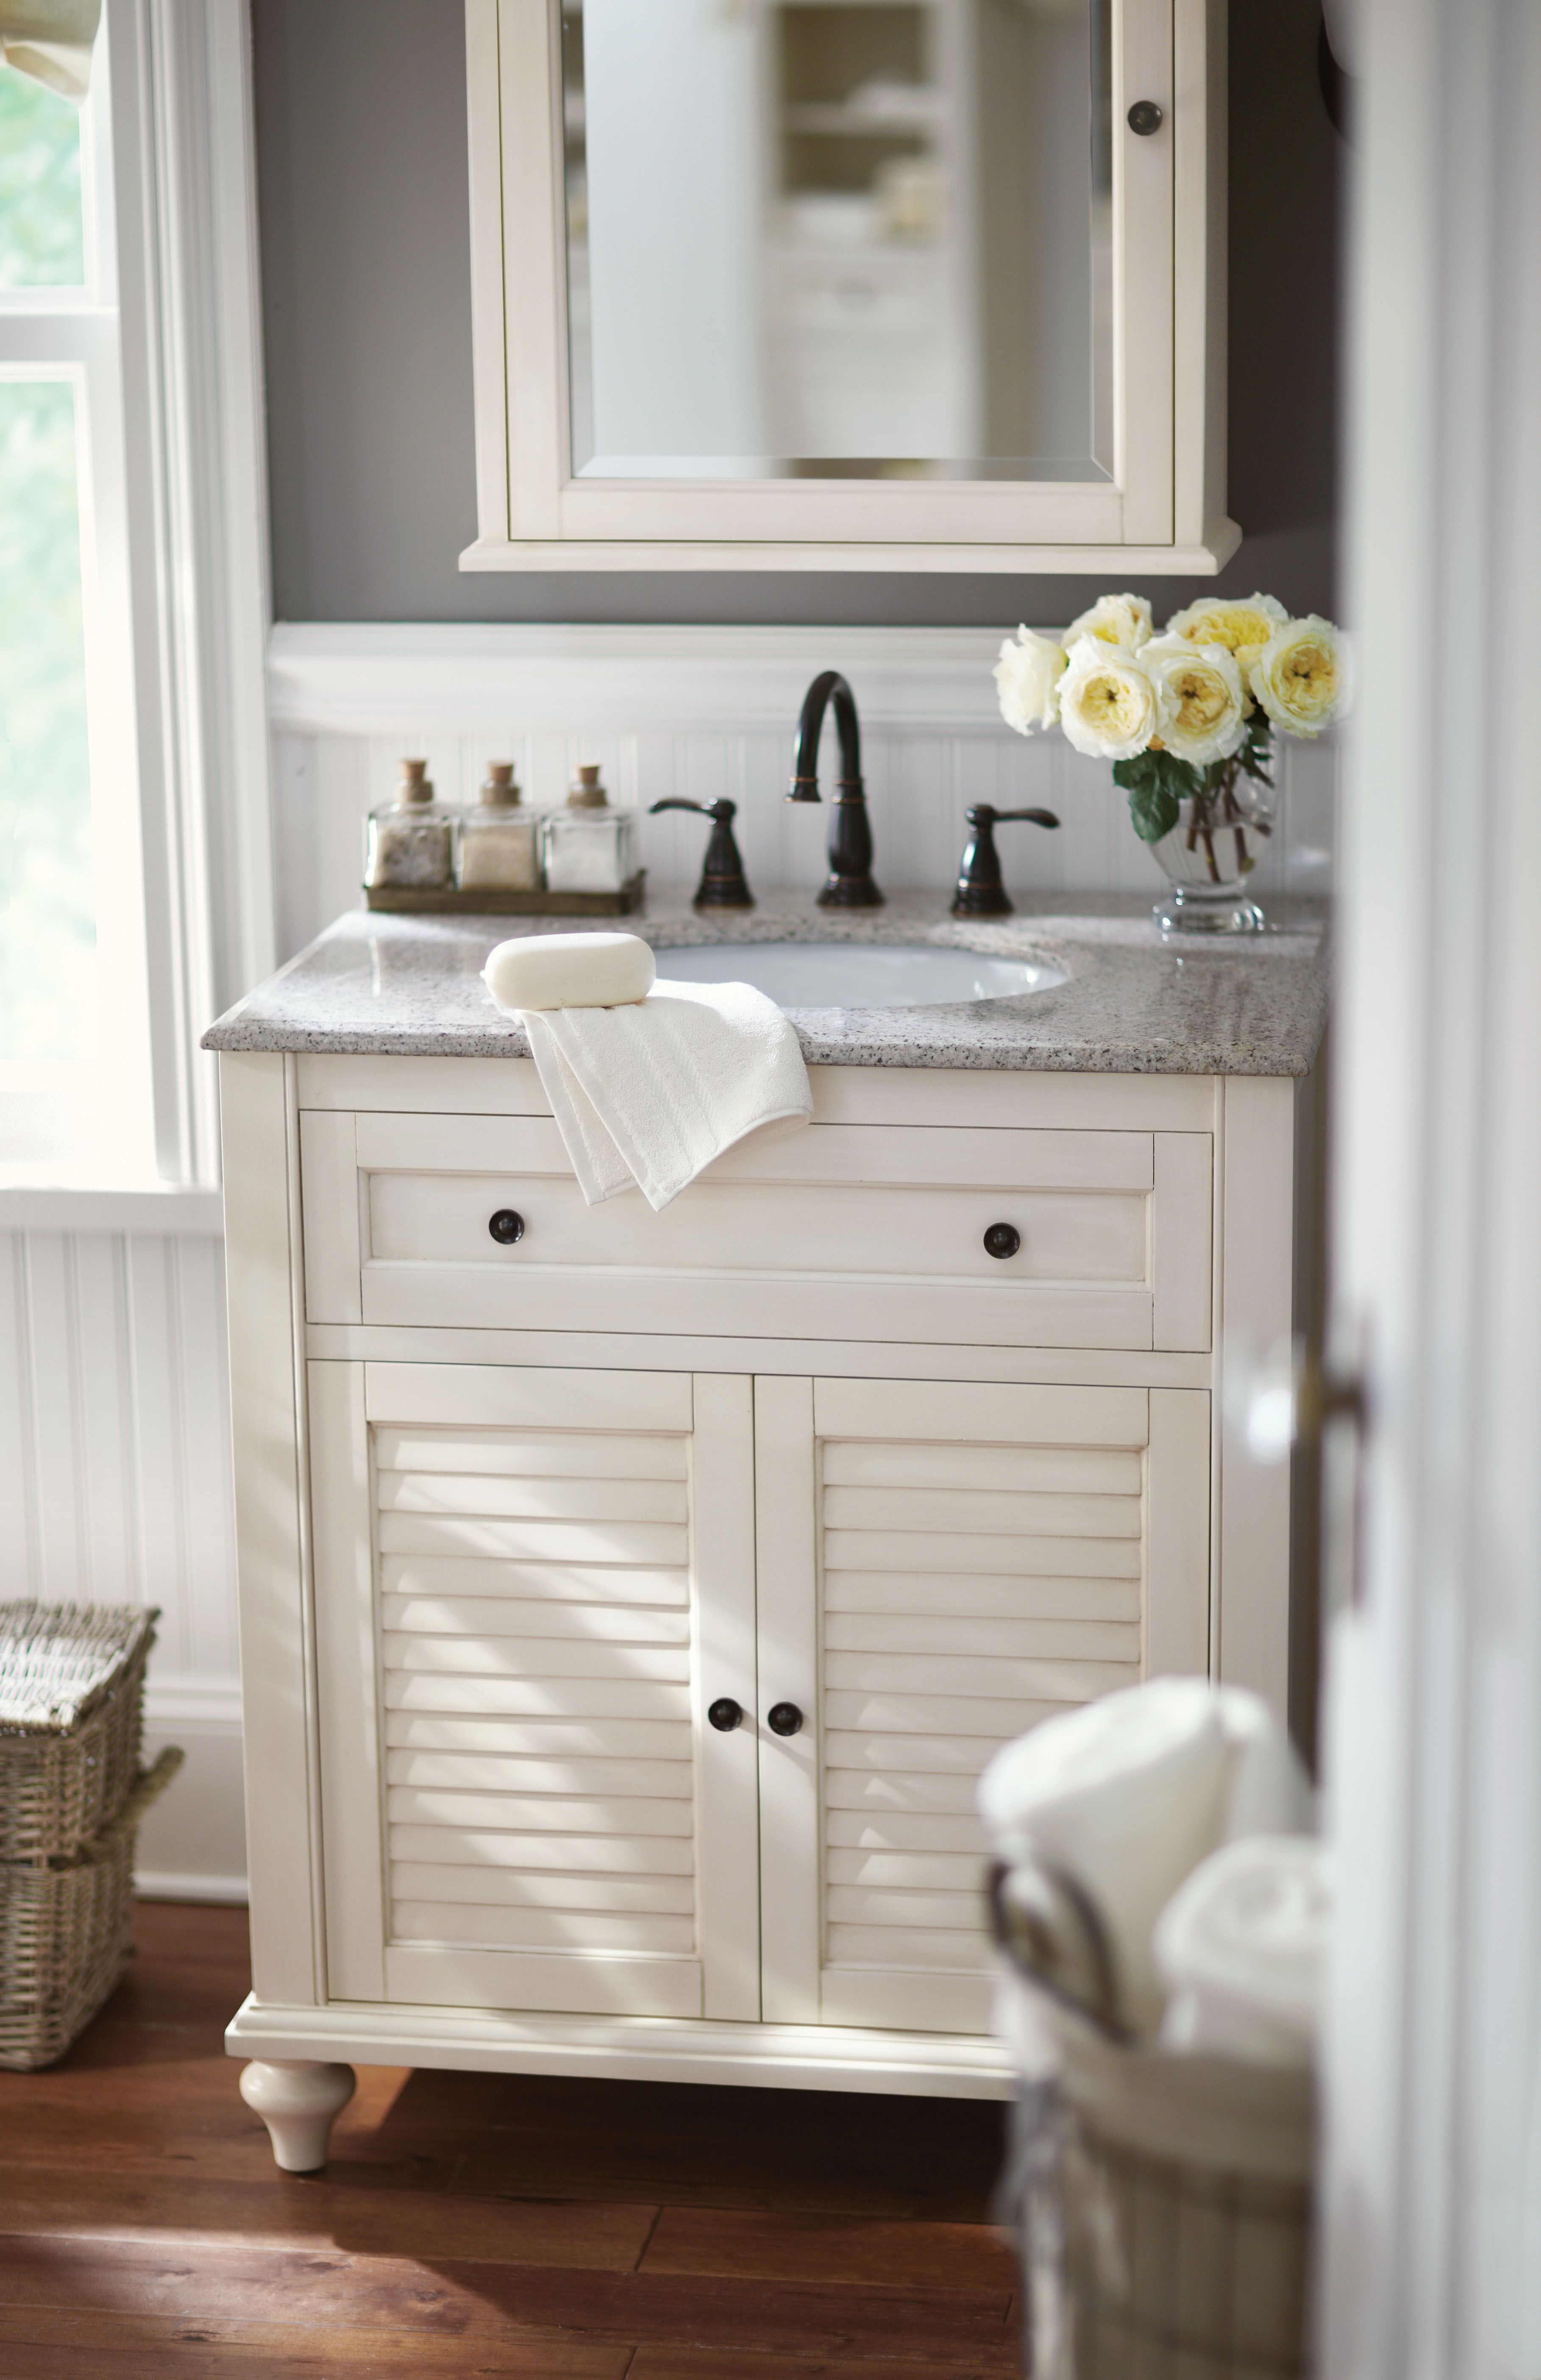 small bath no problem a single vanity like this one is the answer